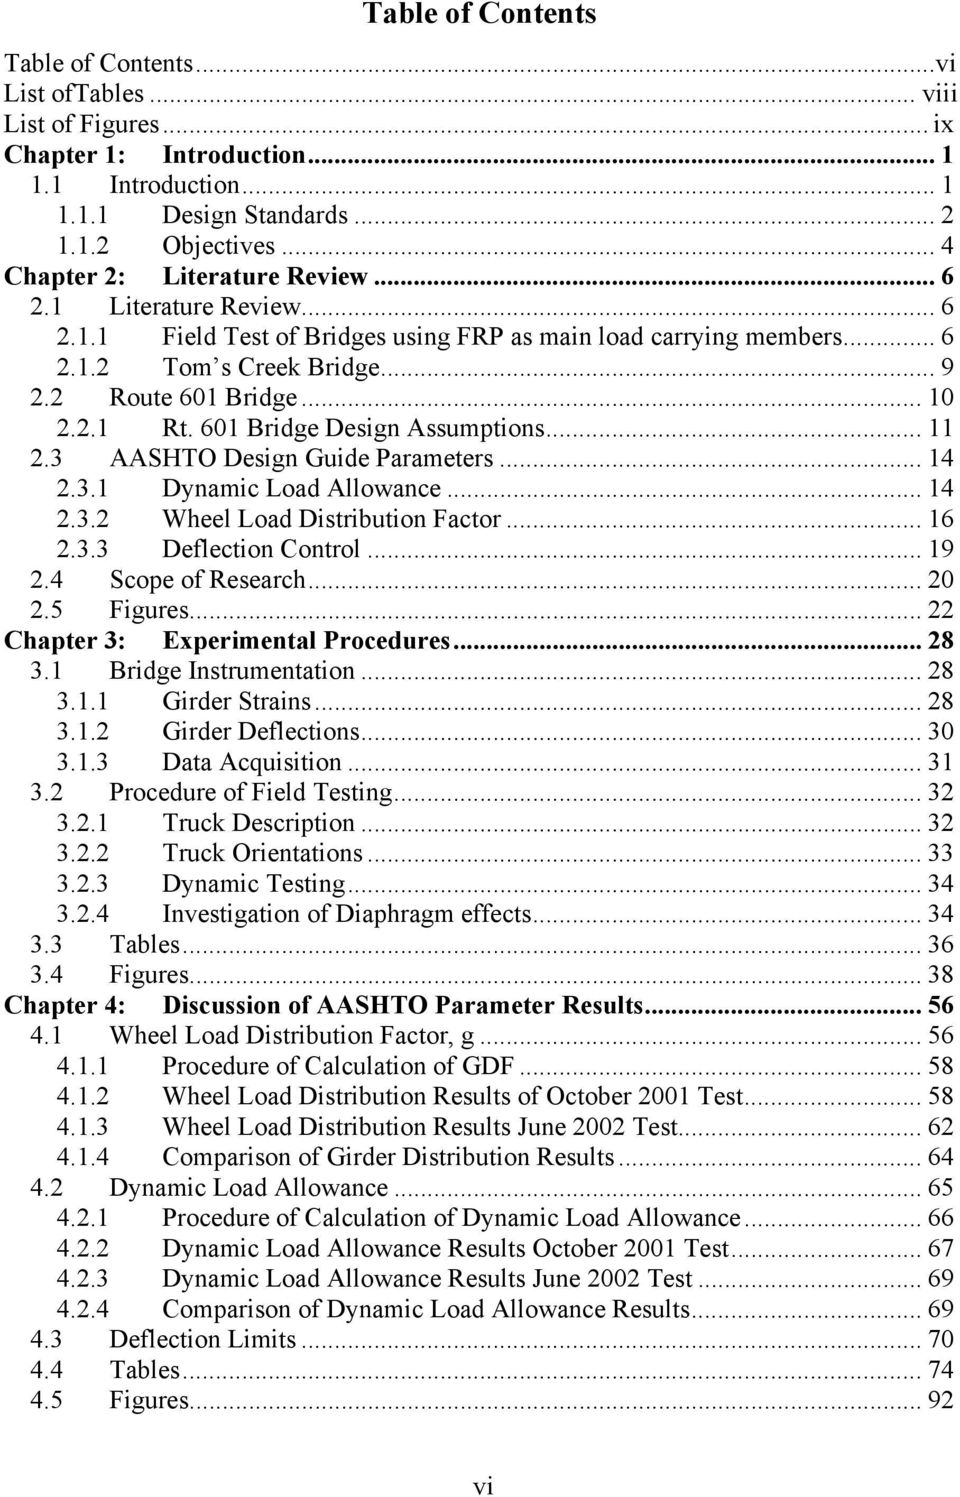 601 Bridge Design Assumptions... 11 2.3 AASHTO Design Guide Parameters... 14 2.3.1 Dynamic Load Allowance... 14 2.3.2 Wheel Load Distribution Factor... 16 2.3.3 Deflection Control... 19 2.